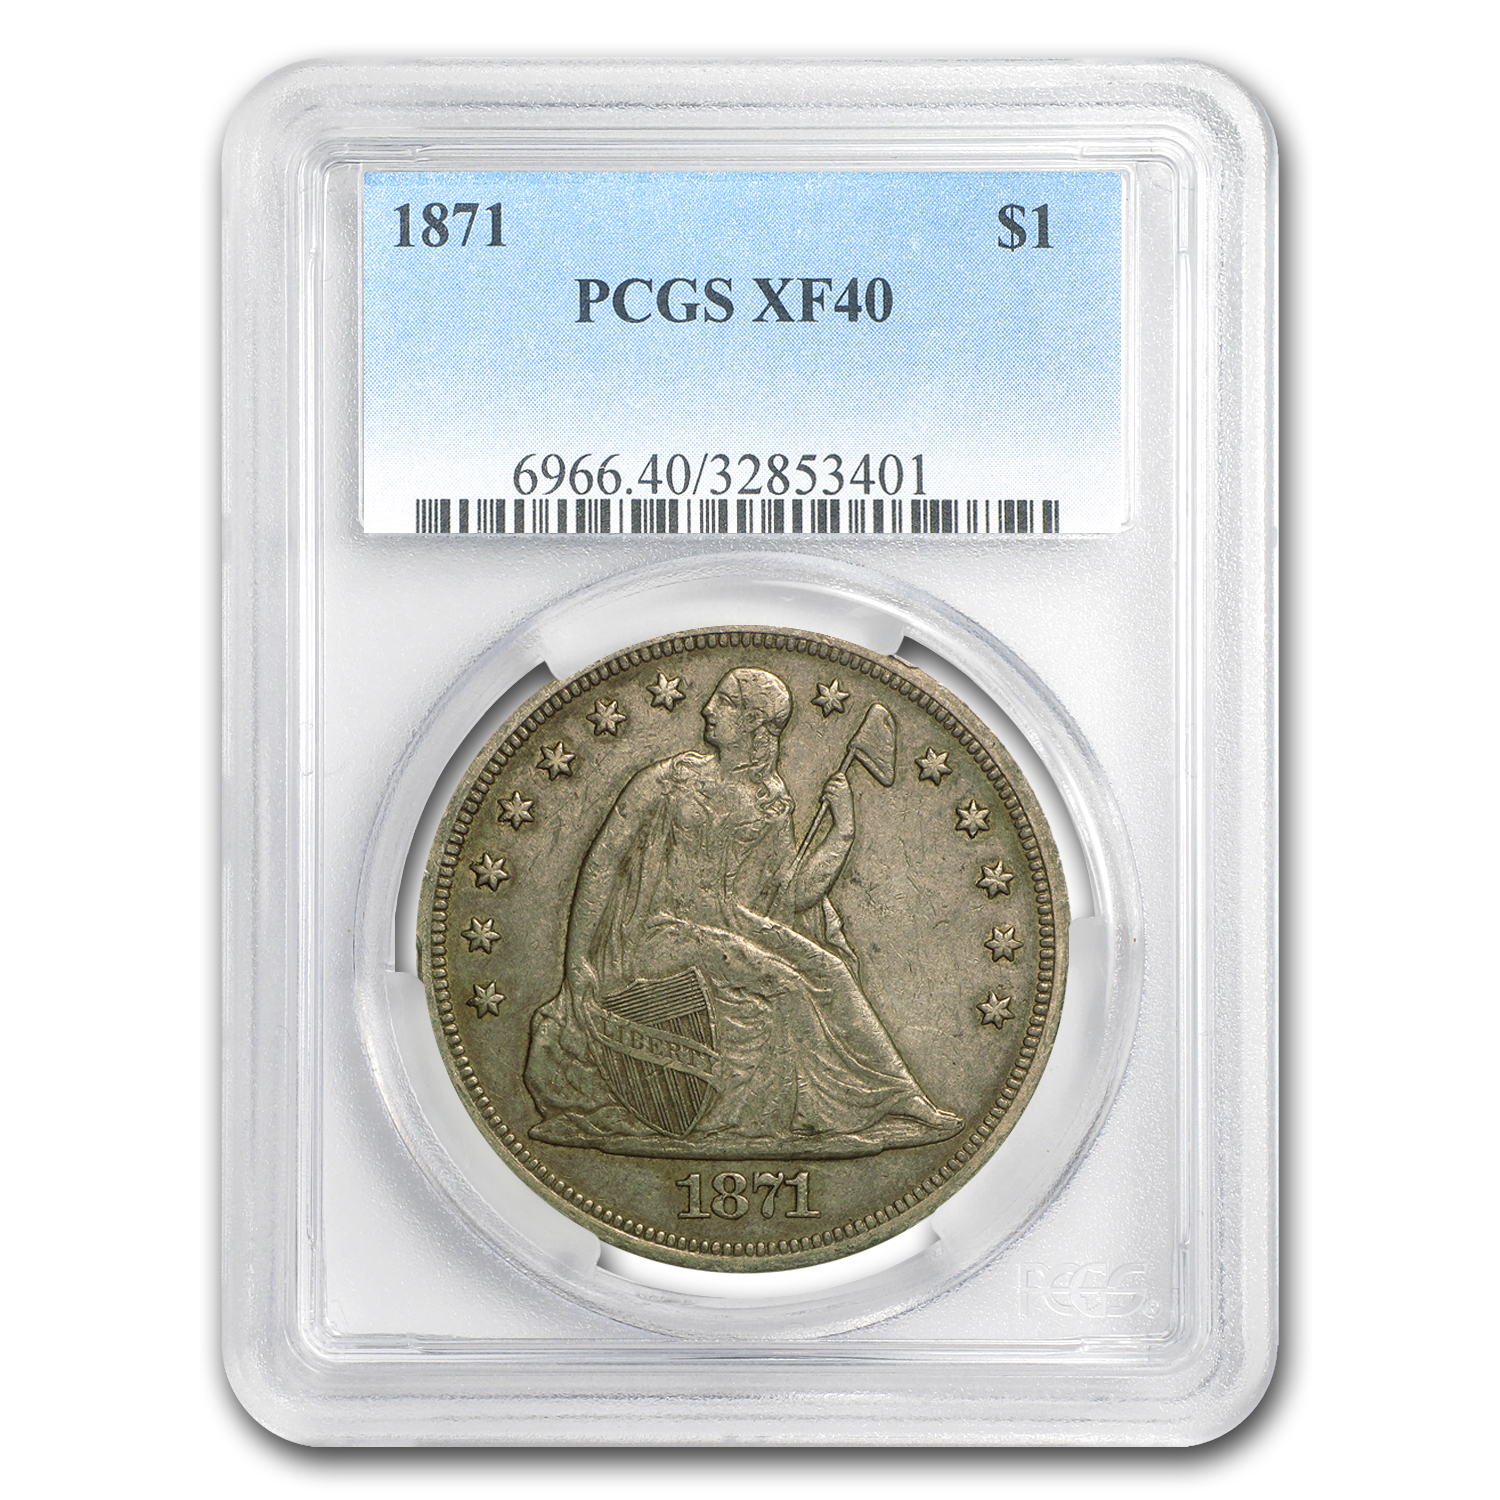 1871 Liberty Seated Dollar XF-40 PCGS